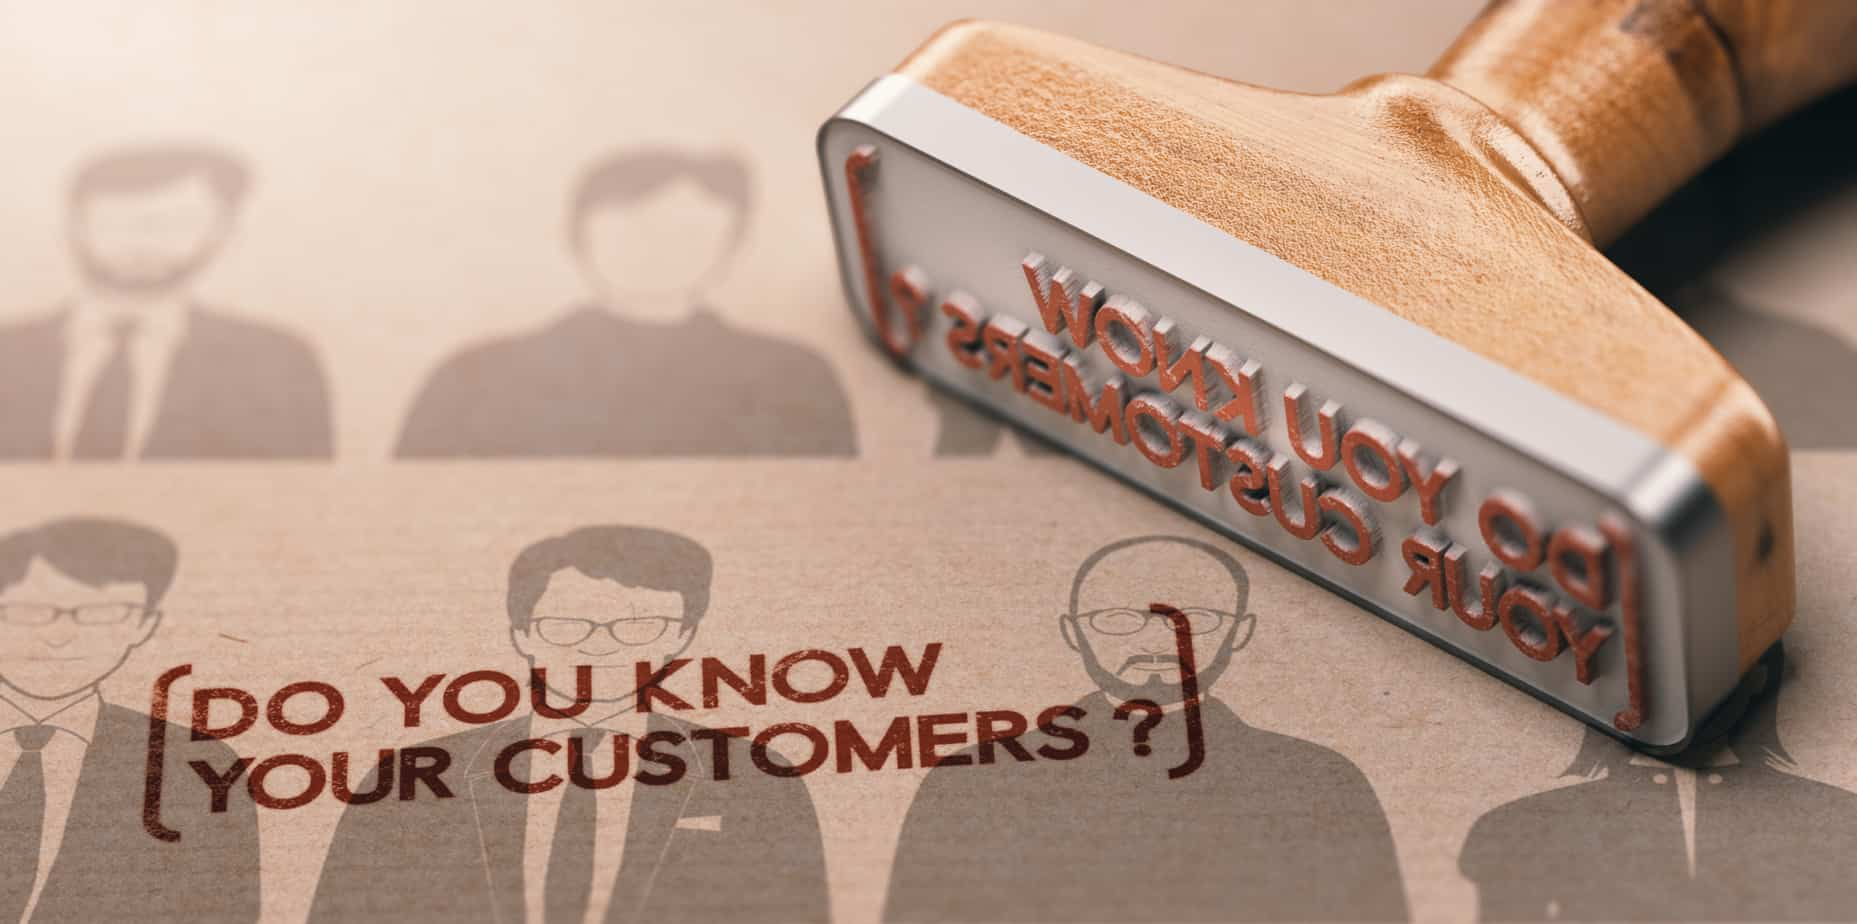 kyc do you know your customers 144484249